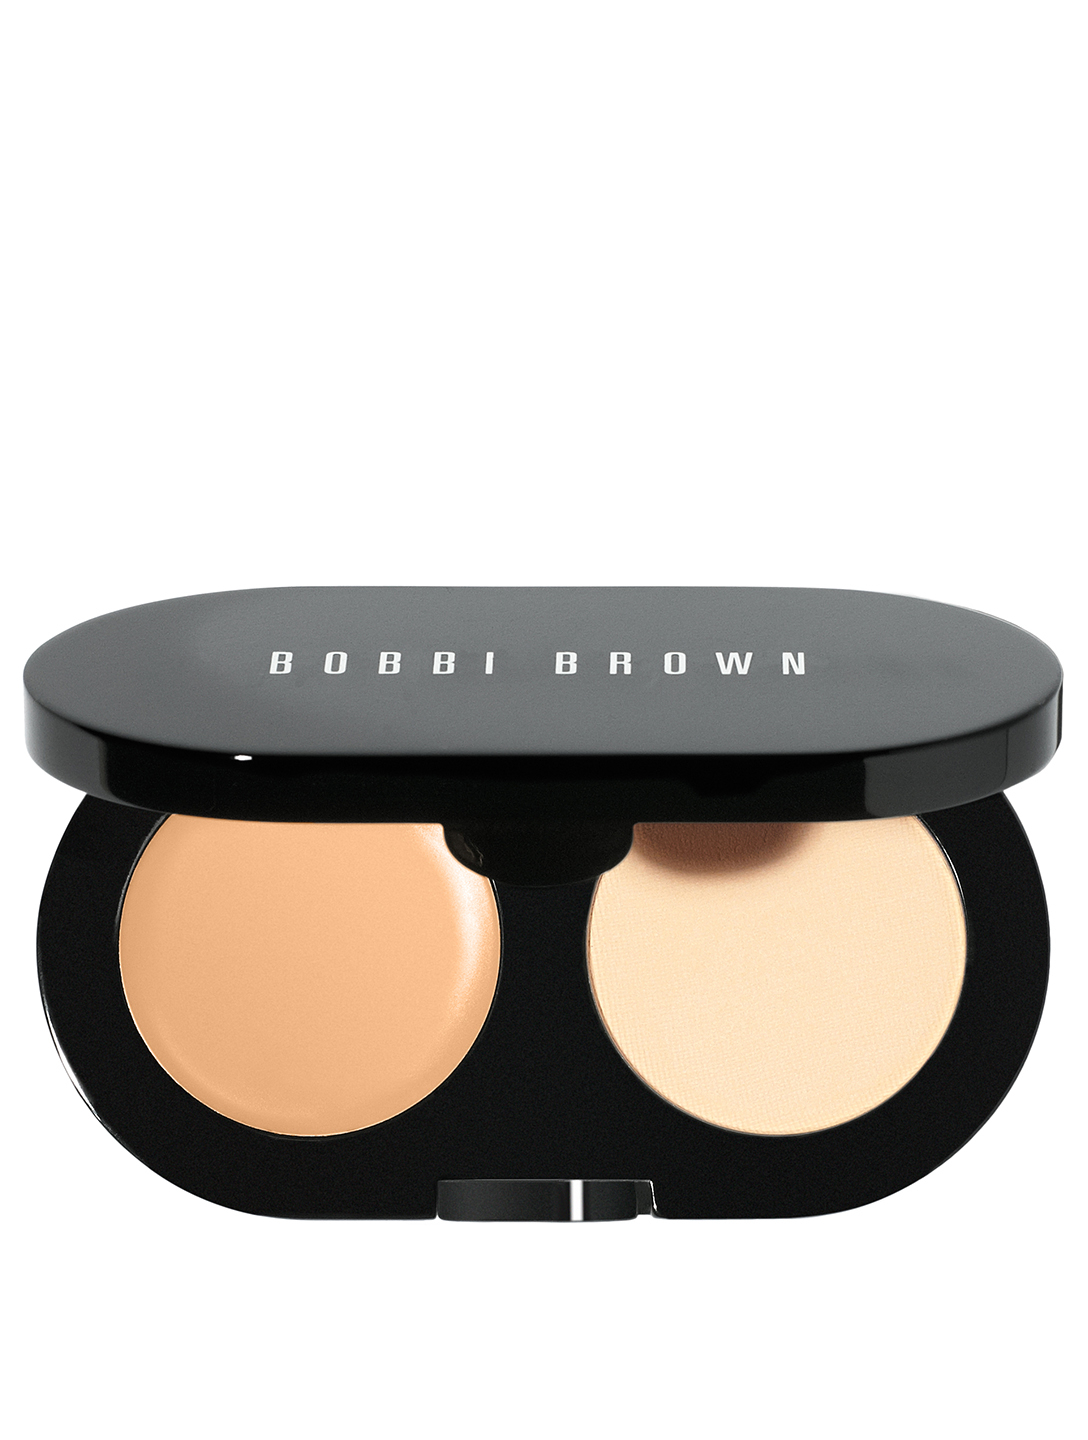 BOBBI BROWN Creamy Concealer Kit Beauty Neutral